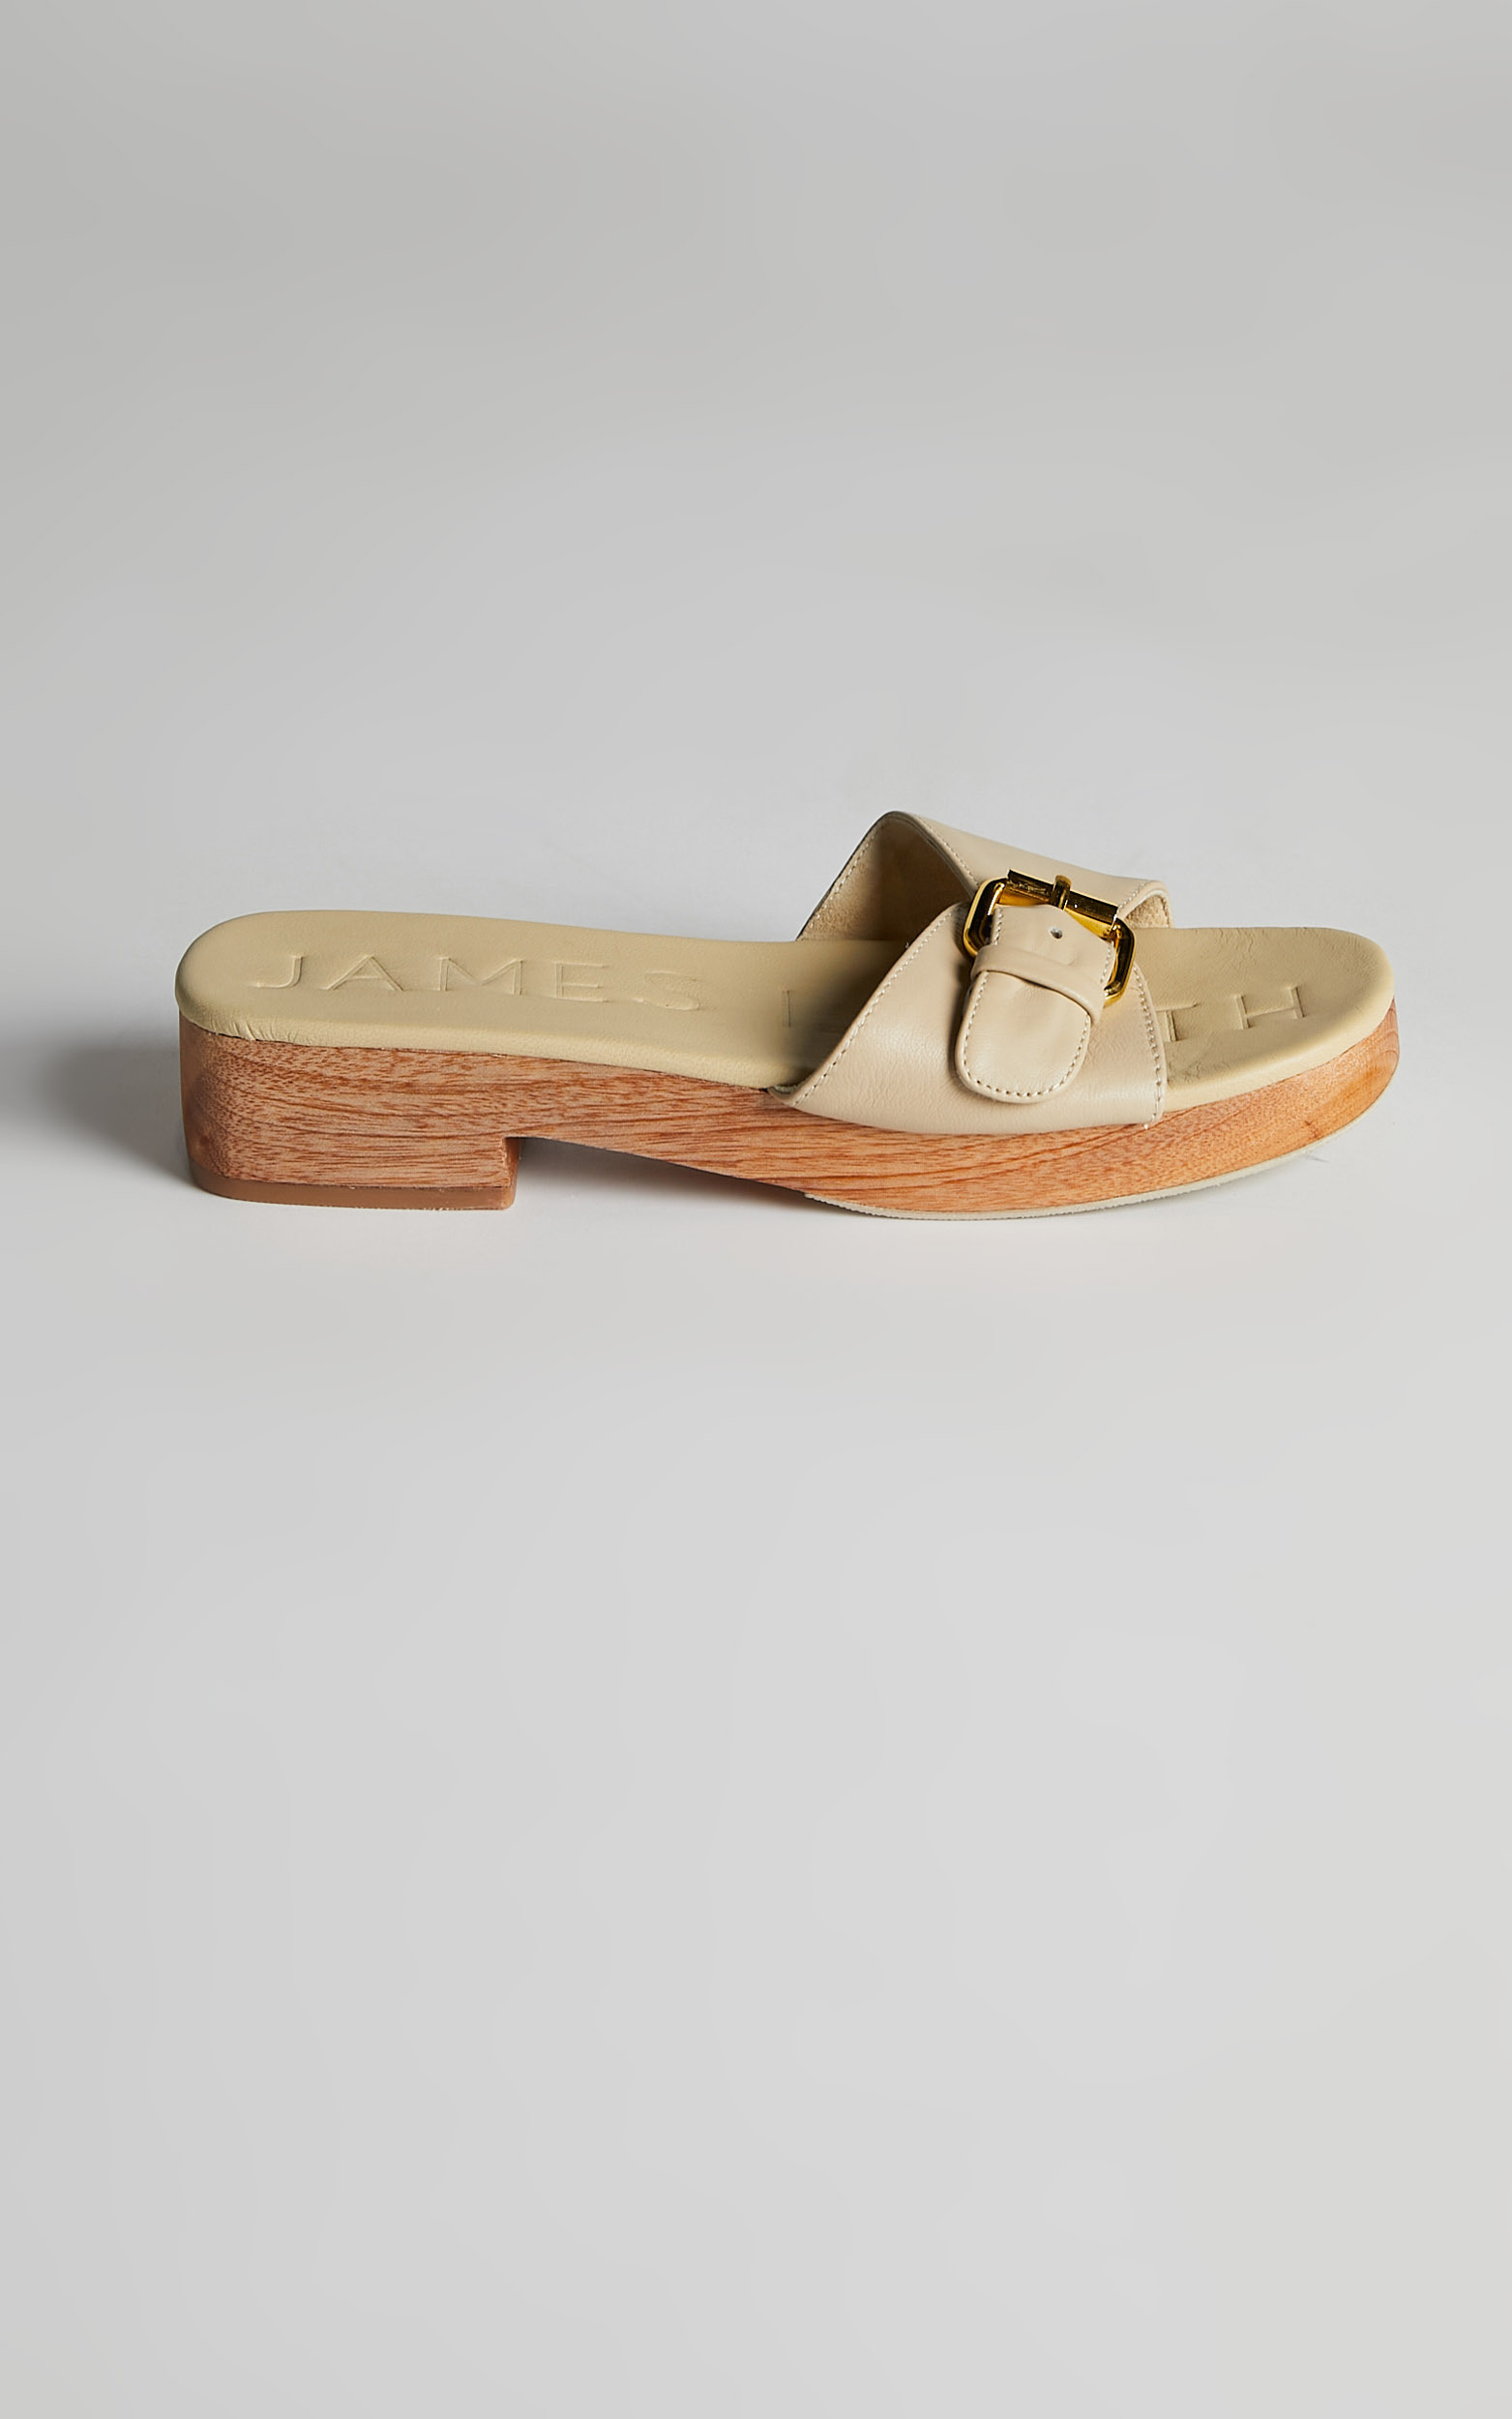 James Smith - Como Clog in Nude - 05, BRN2, hi-res image number null